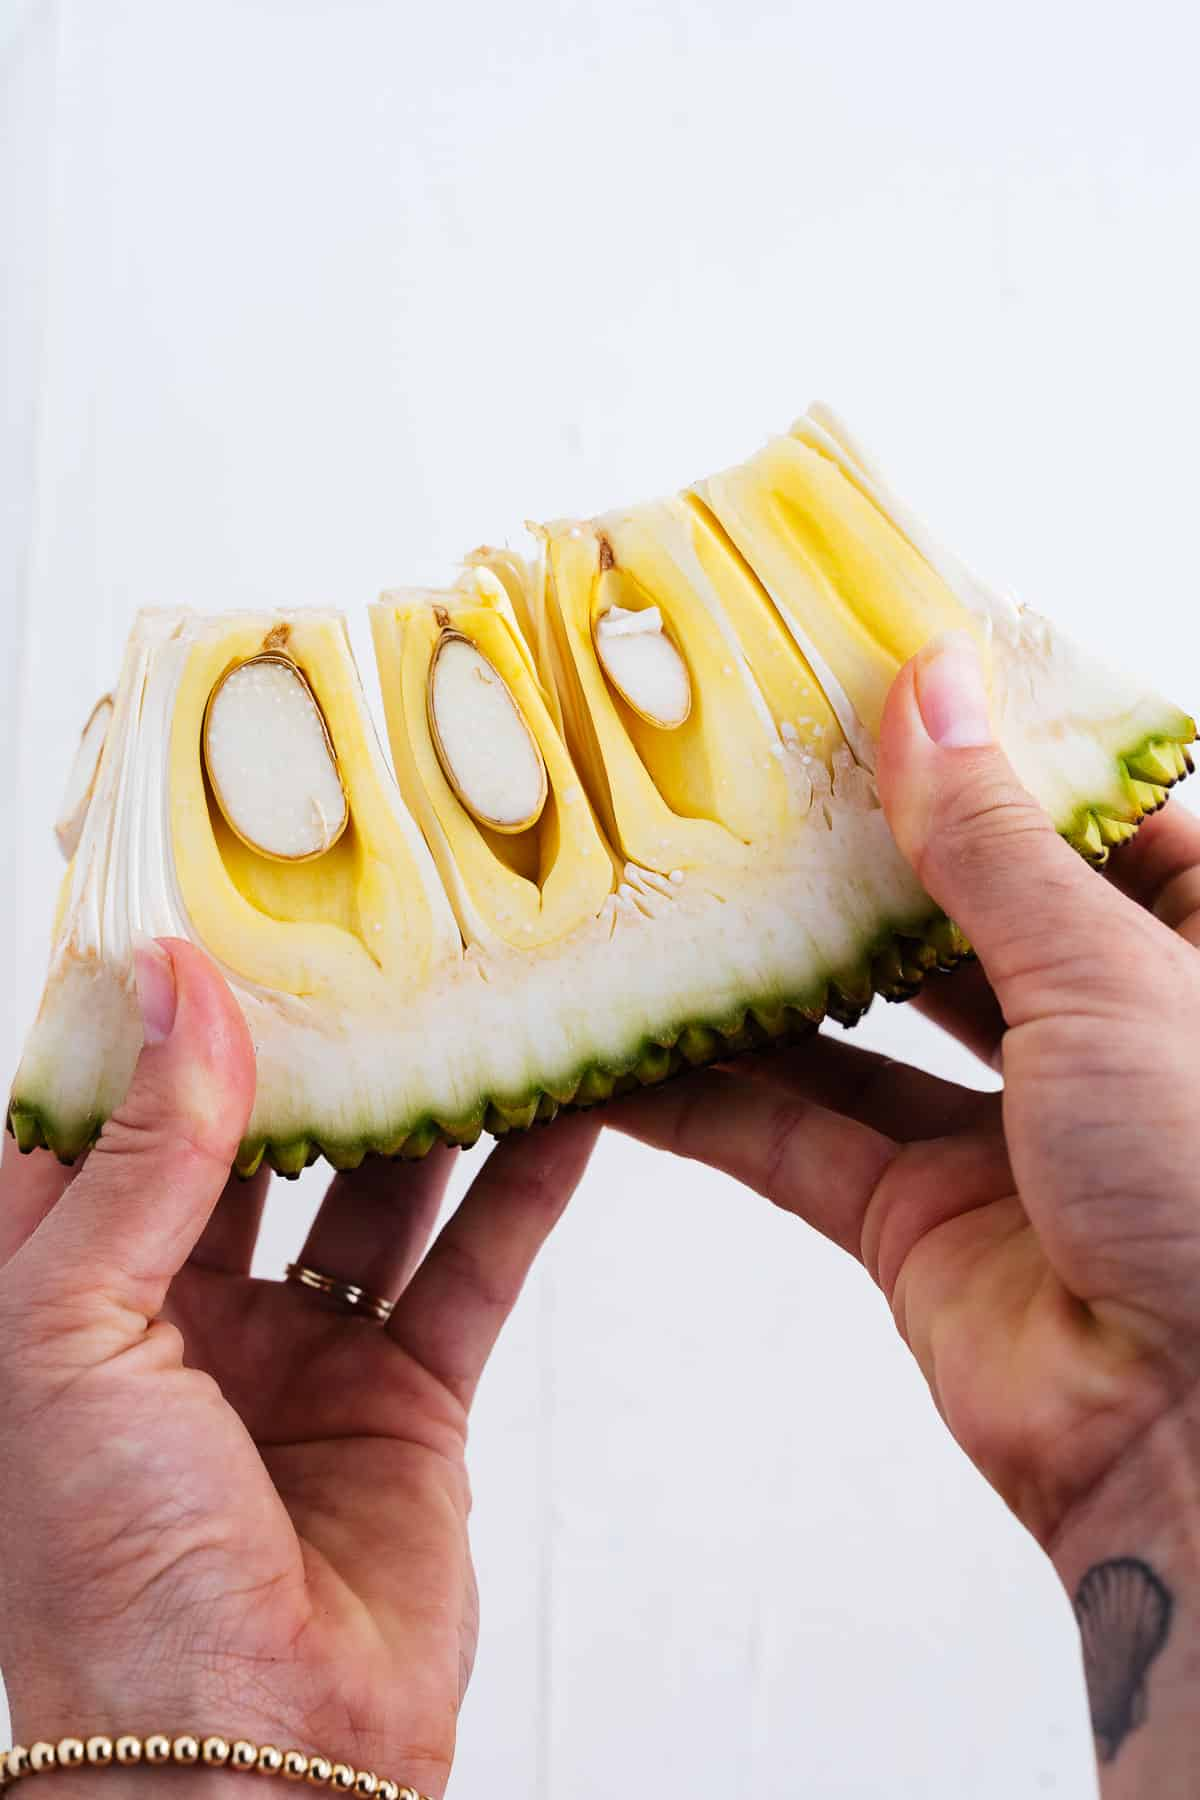 Slice of Jackfruit in Hands